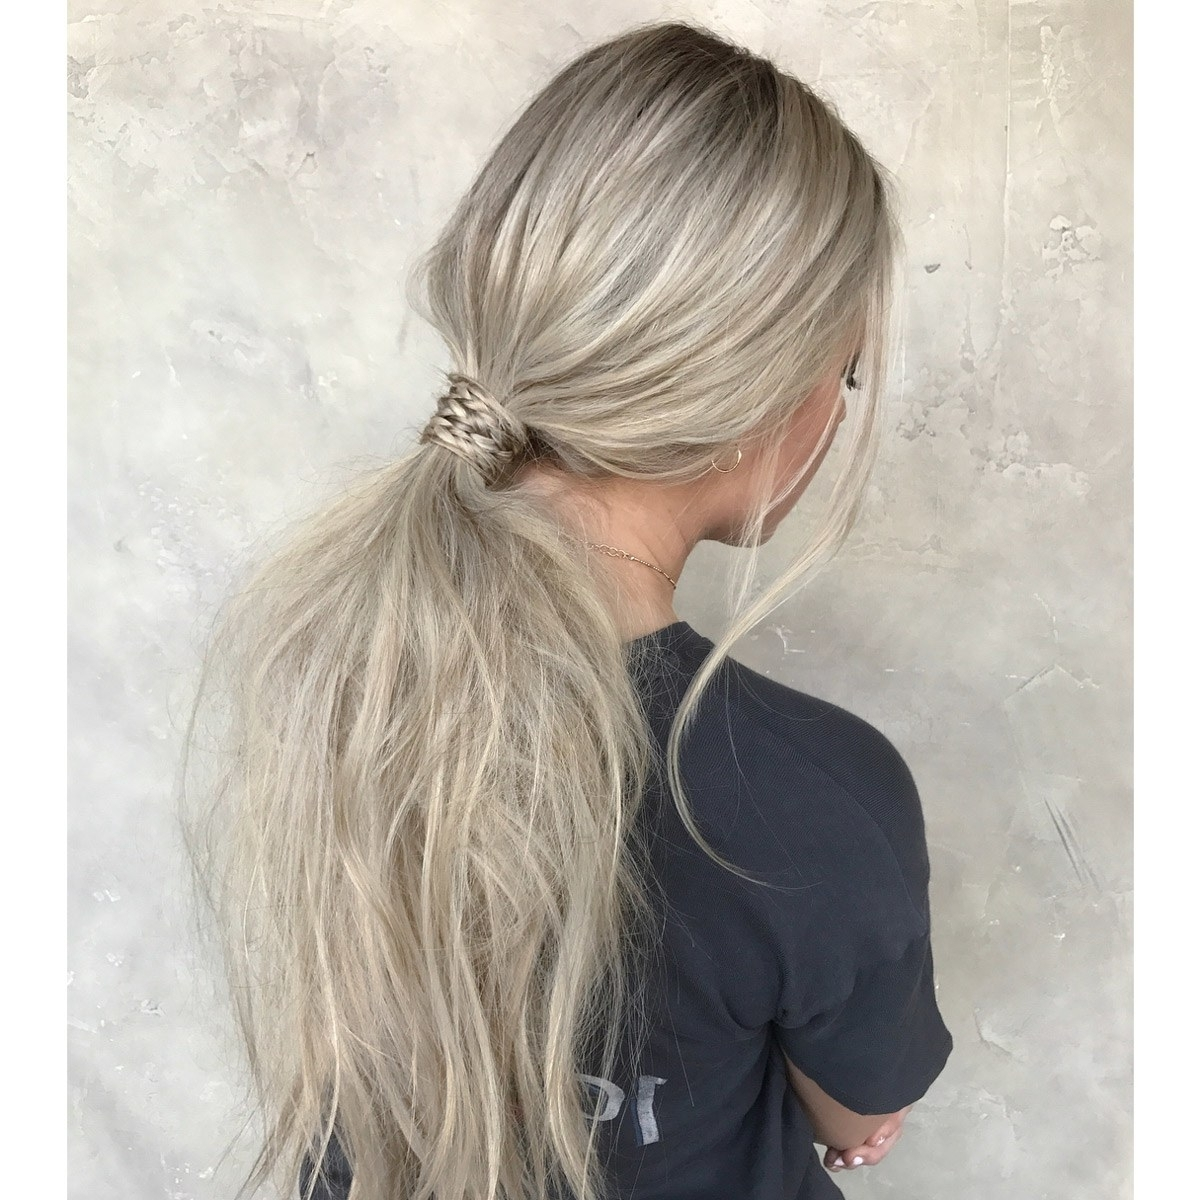 Fashionable Double Tied Pony Hairstyles In 27 Ponytail Hairstyles For 2018: Best Ponytail Styles (View 4 of 20)